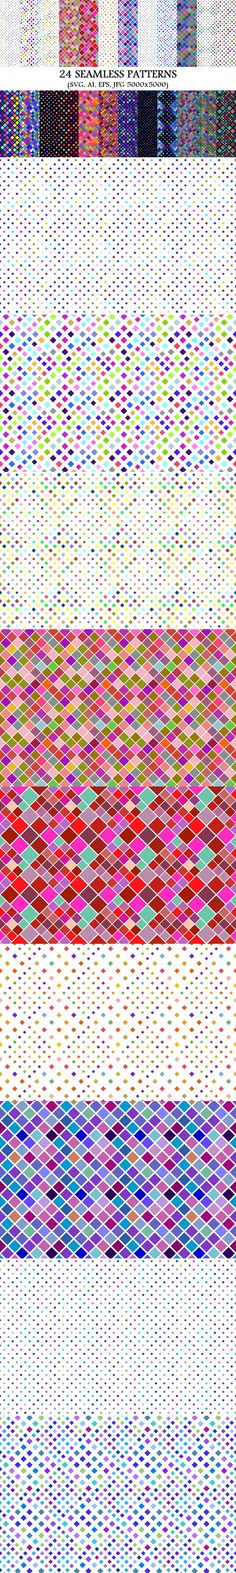 24 Seamless Square Patterns #BackgroundGraphics #PatternCollection #geometrical #GeometricDesign #MosaicGraphics #backgrounds #geometric #multicoloredgraphic #abstractbackground #MosaicBackground #background #cheap #background #multicoloredbackgrounds #mosaicbackground #background #GeometricPatterns #PatternGraphics #pattern